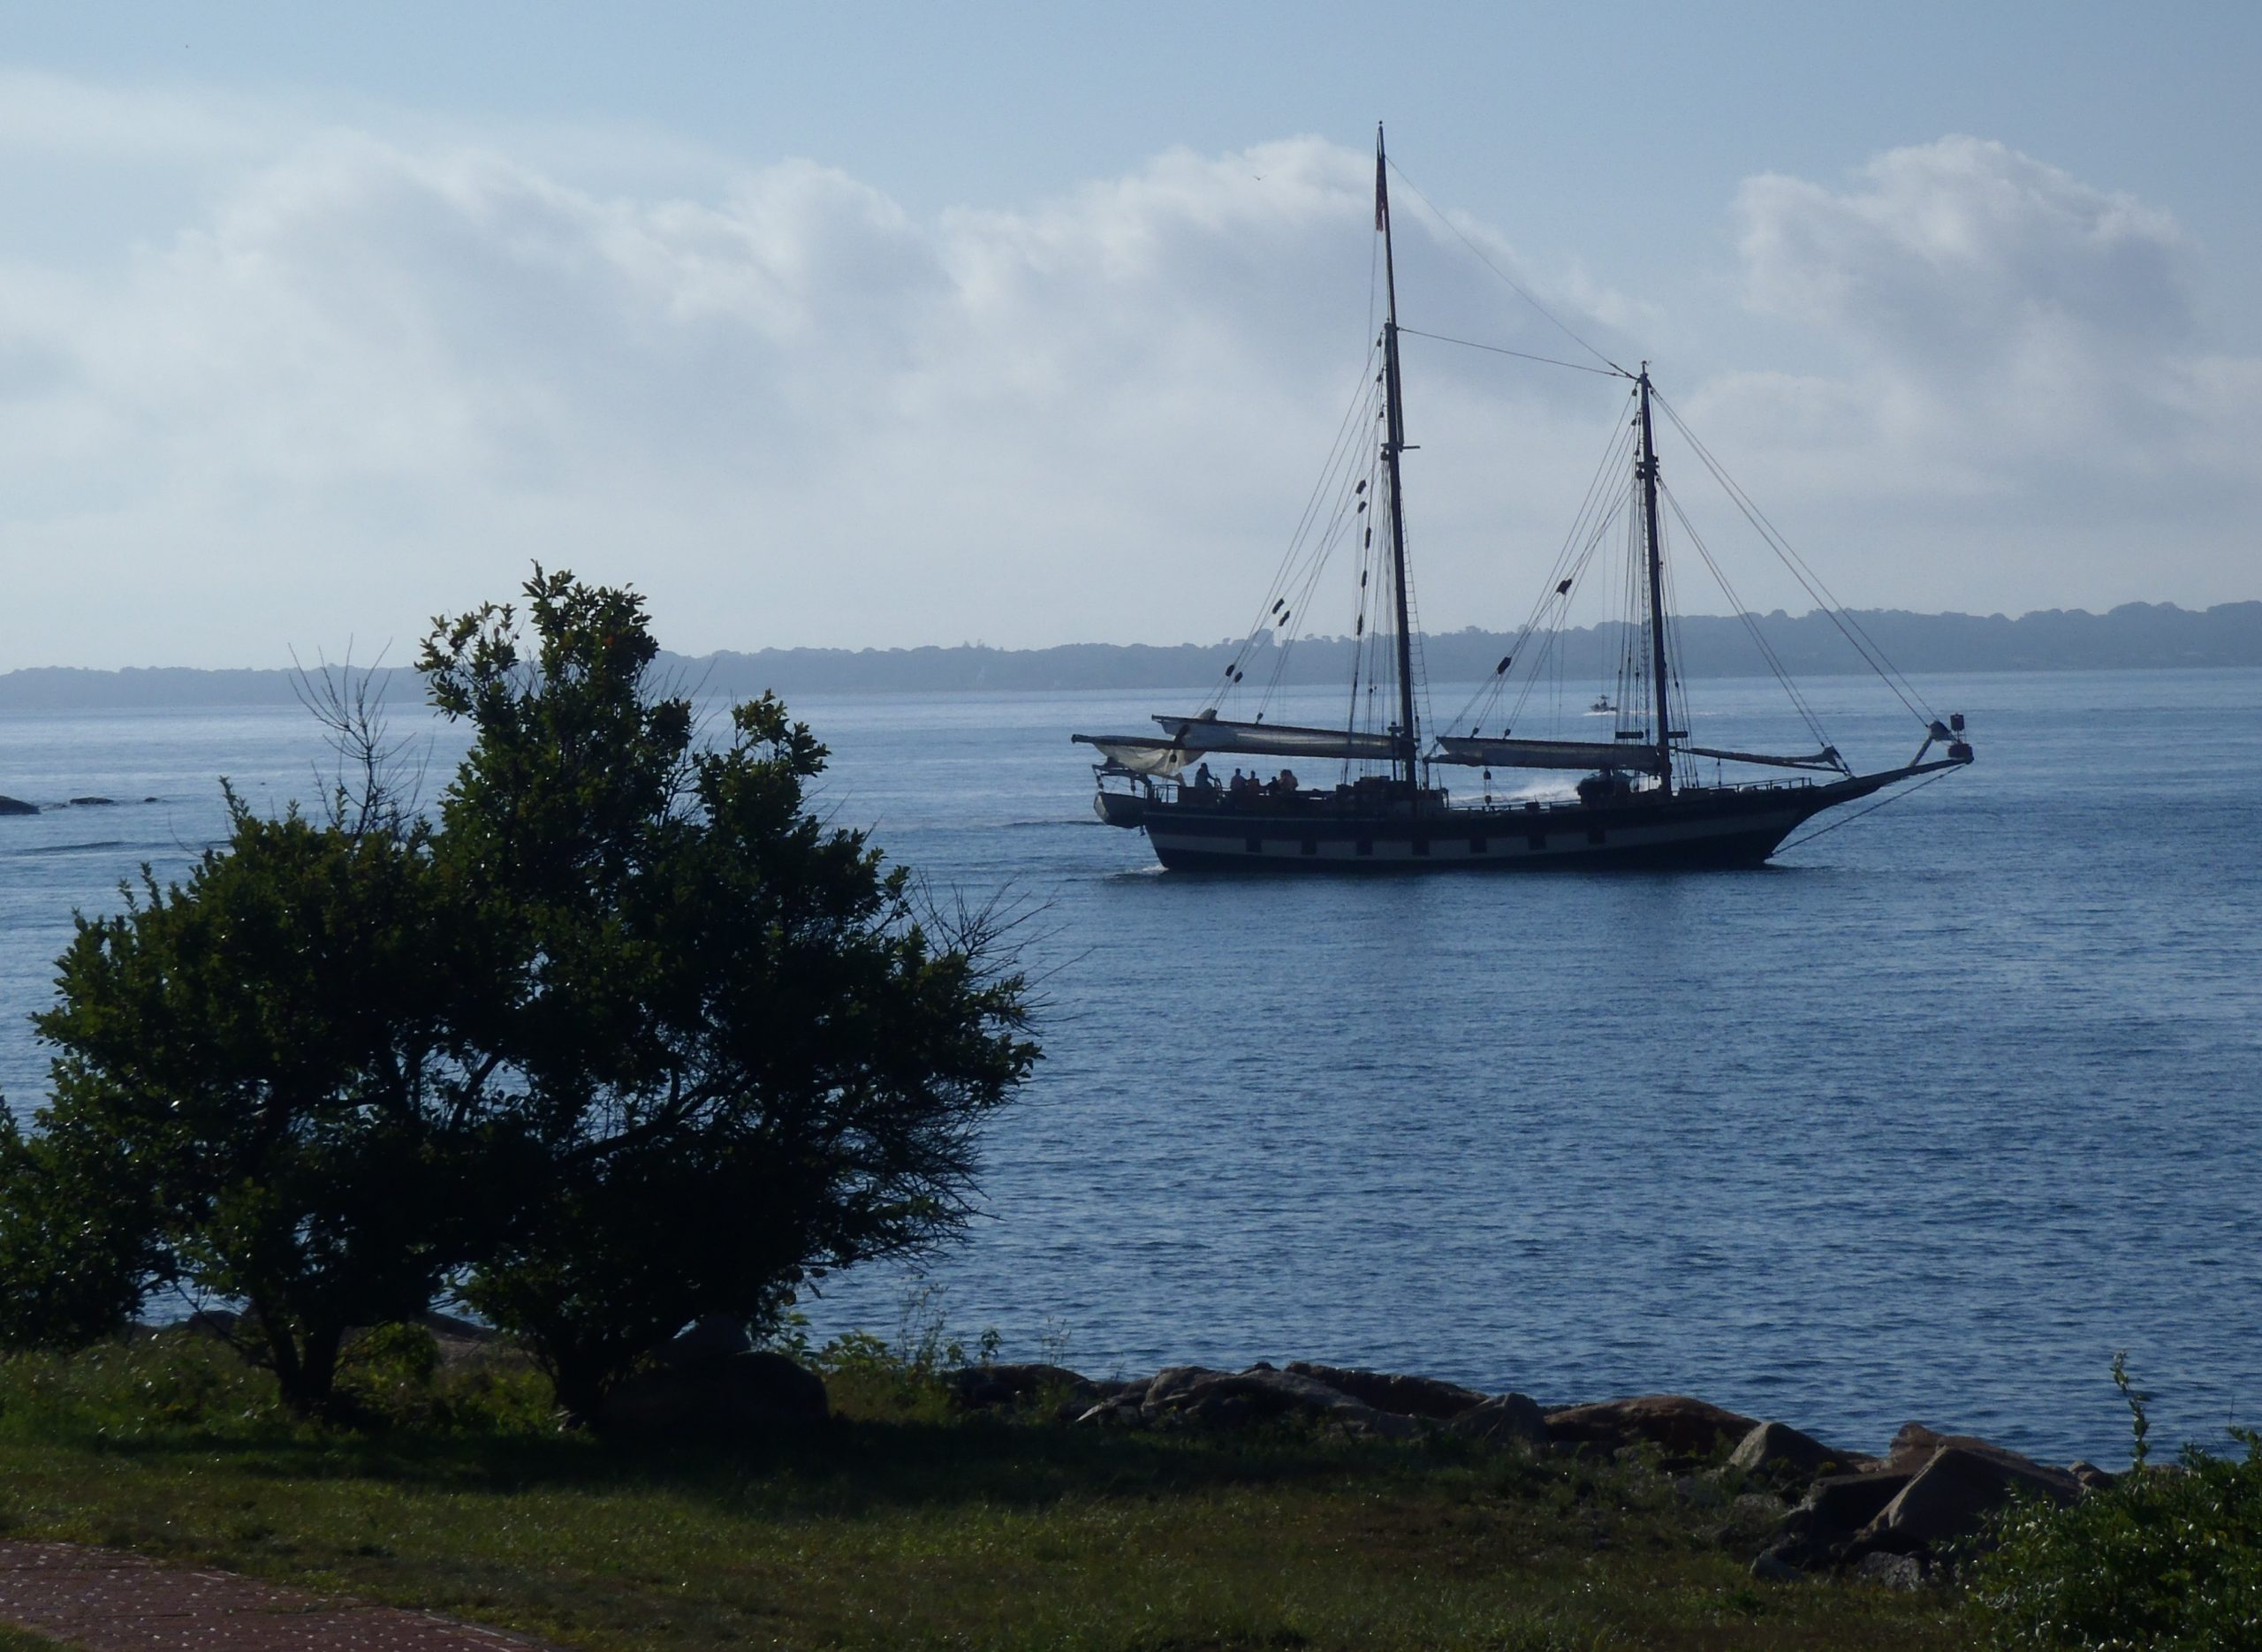 Coastline in foreground with large bush on left.  Blue water beyond with a sailing vessel on the water